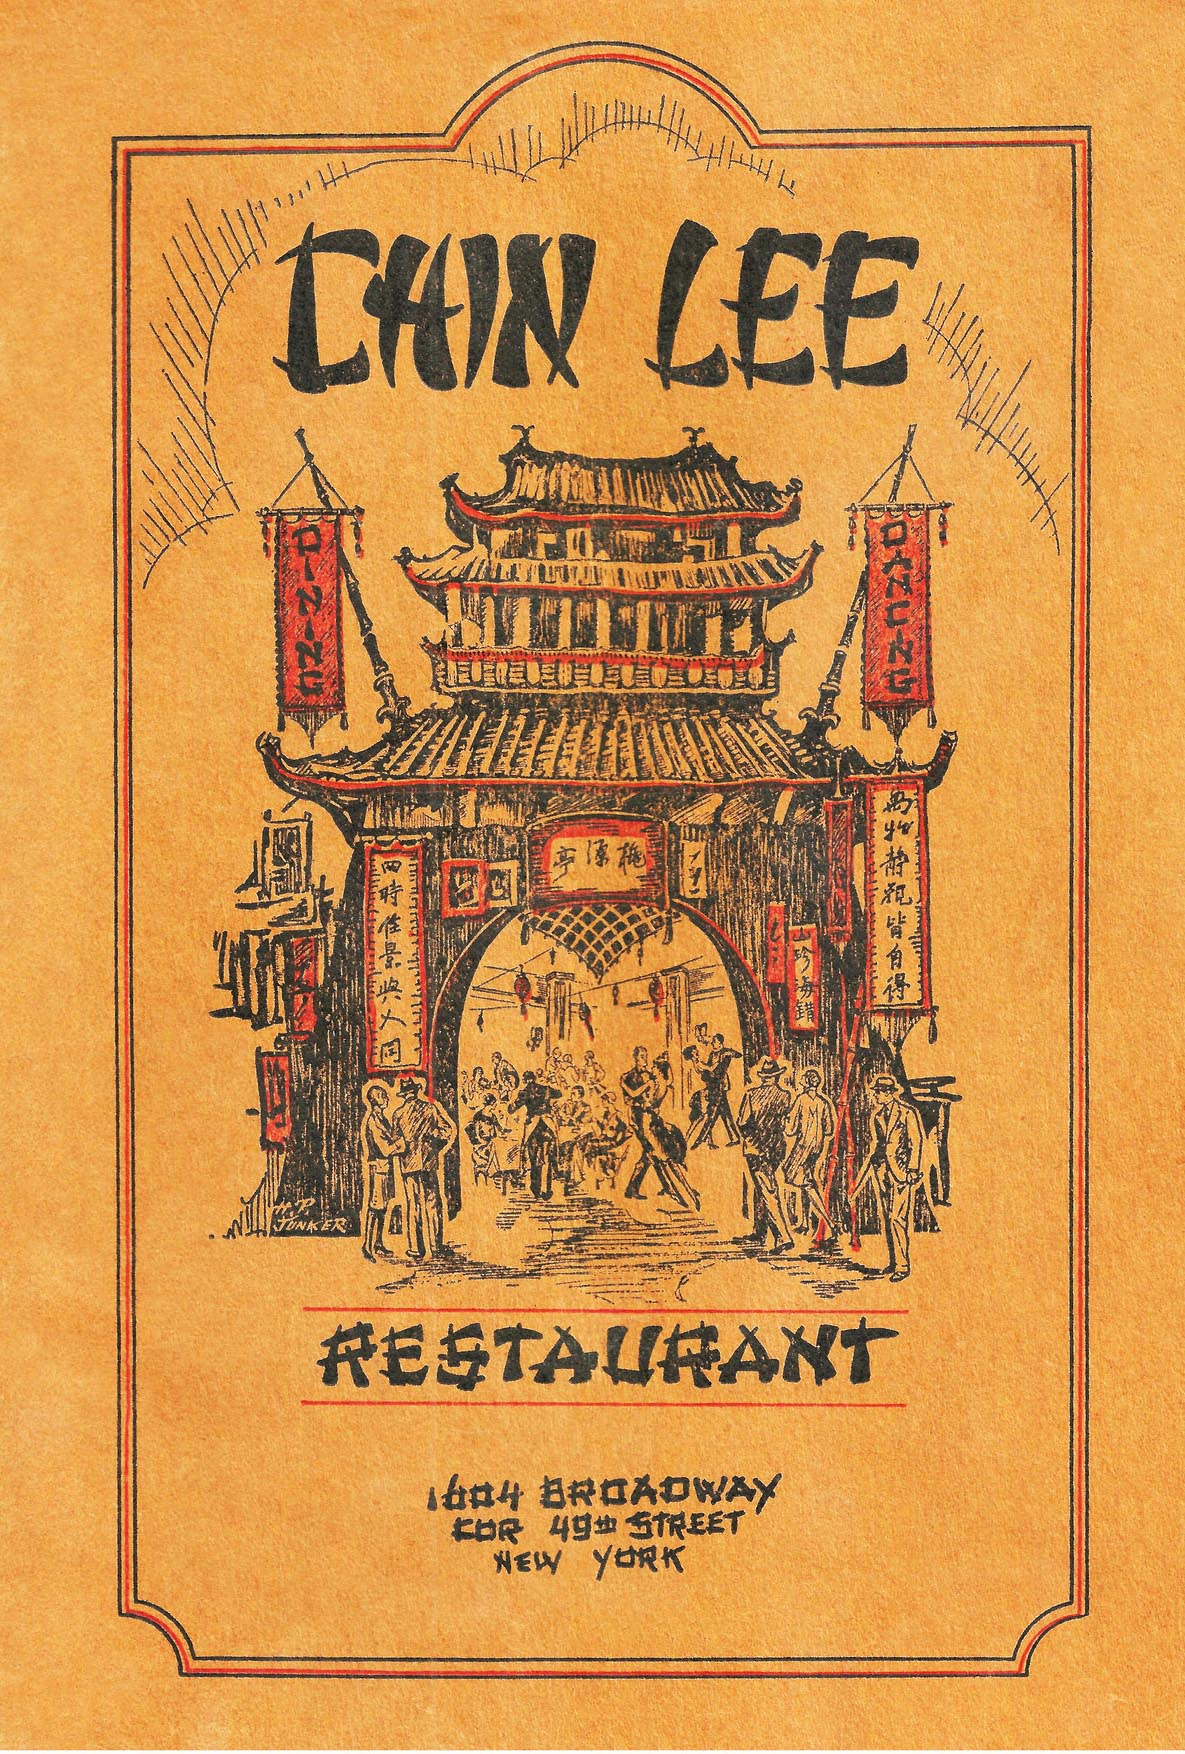 1930s Chin Lee Restaurant menu cover (New York)